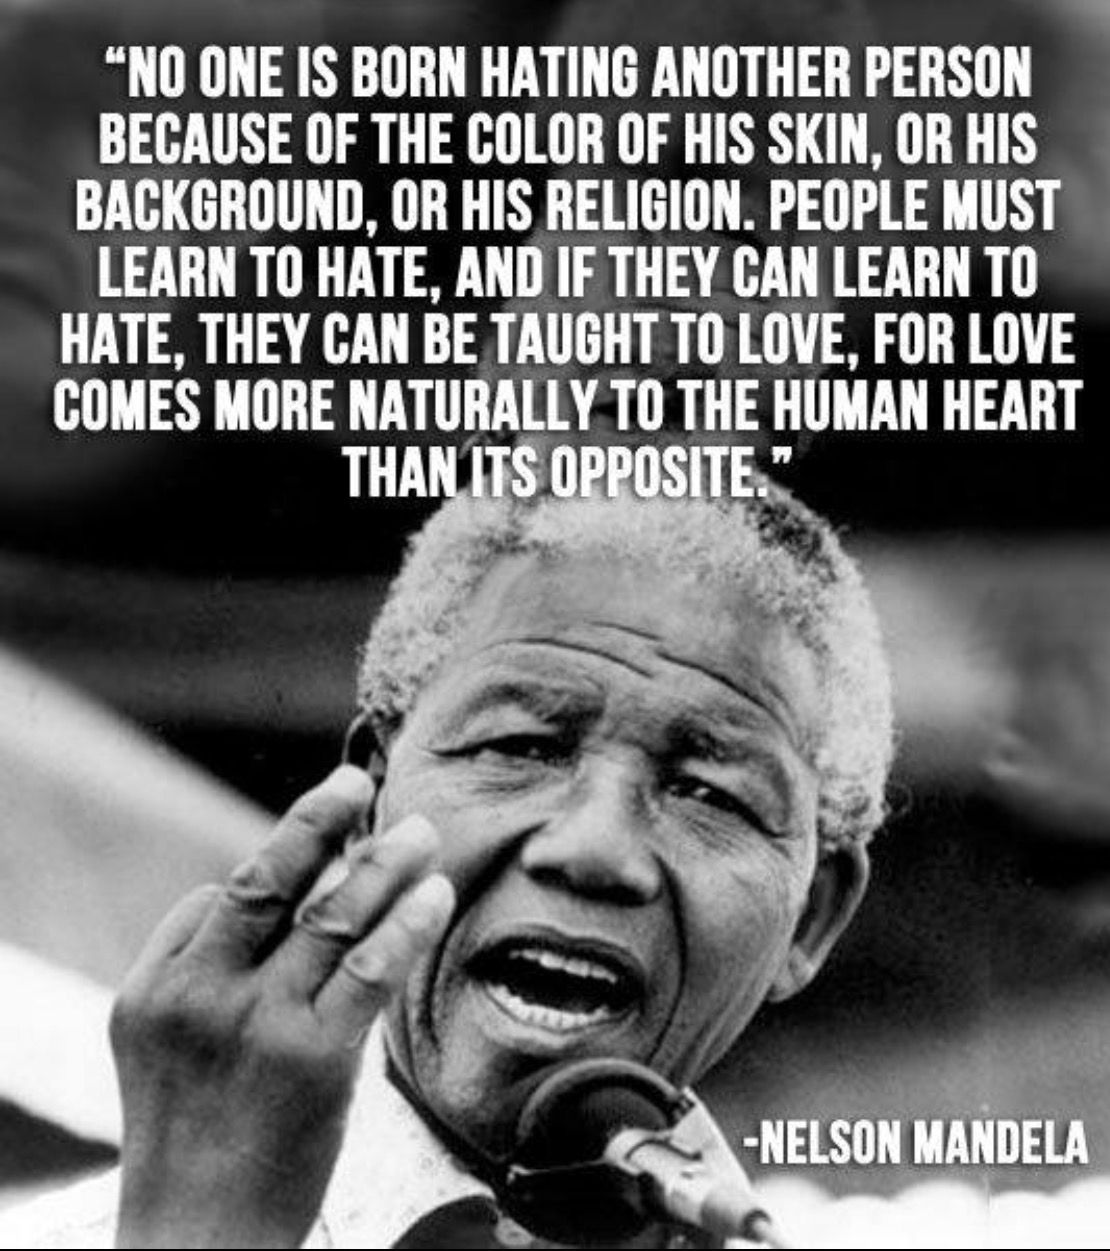 Mandela Quotes About Love Pinsandi Kramer On Quotes To Live❗  Pinterest